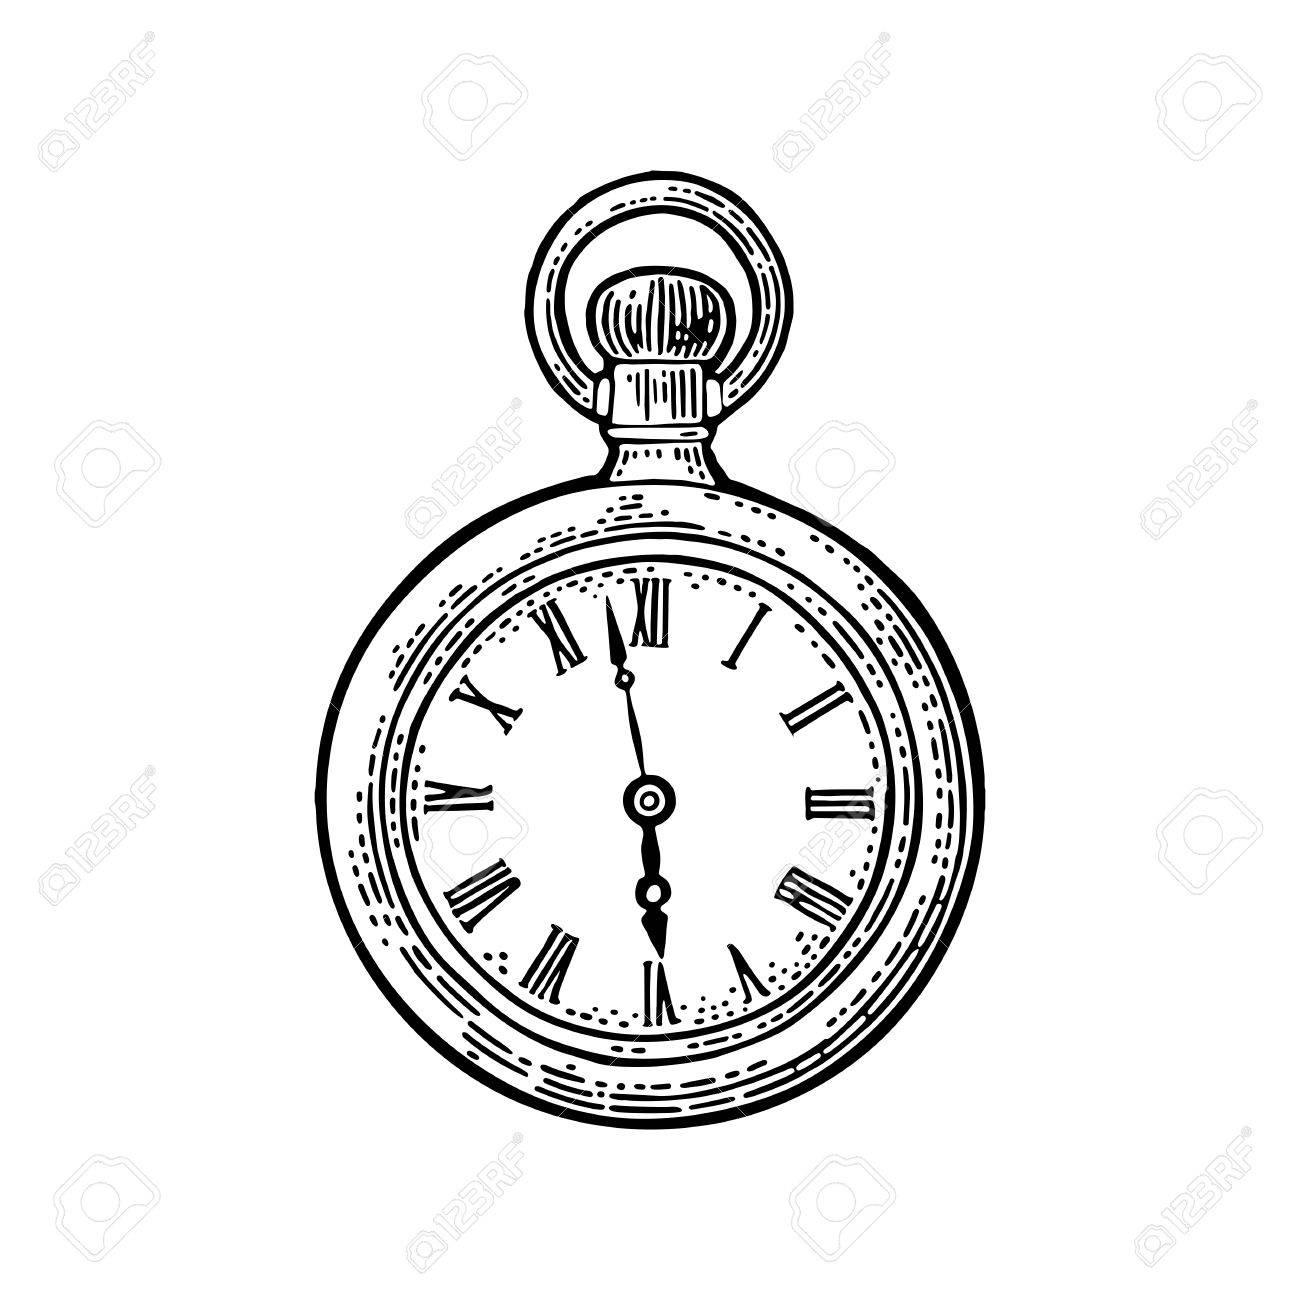 Antique pocket watch. Vintage vector black engraving illustration for info graphic, poster, web. Isolated on white background. - 86381088